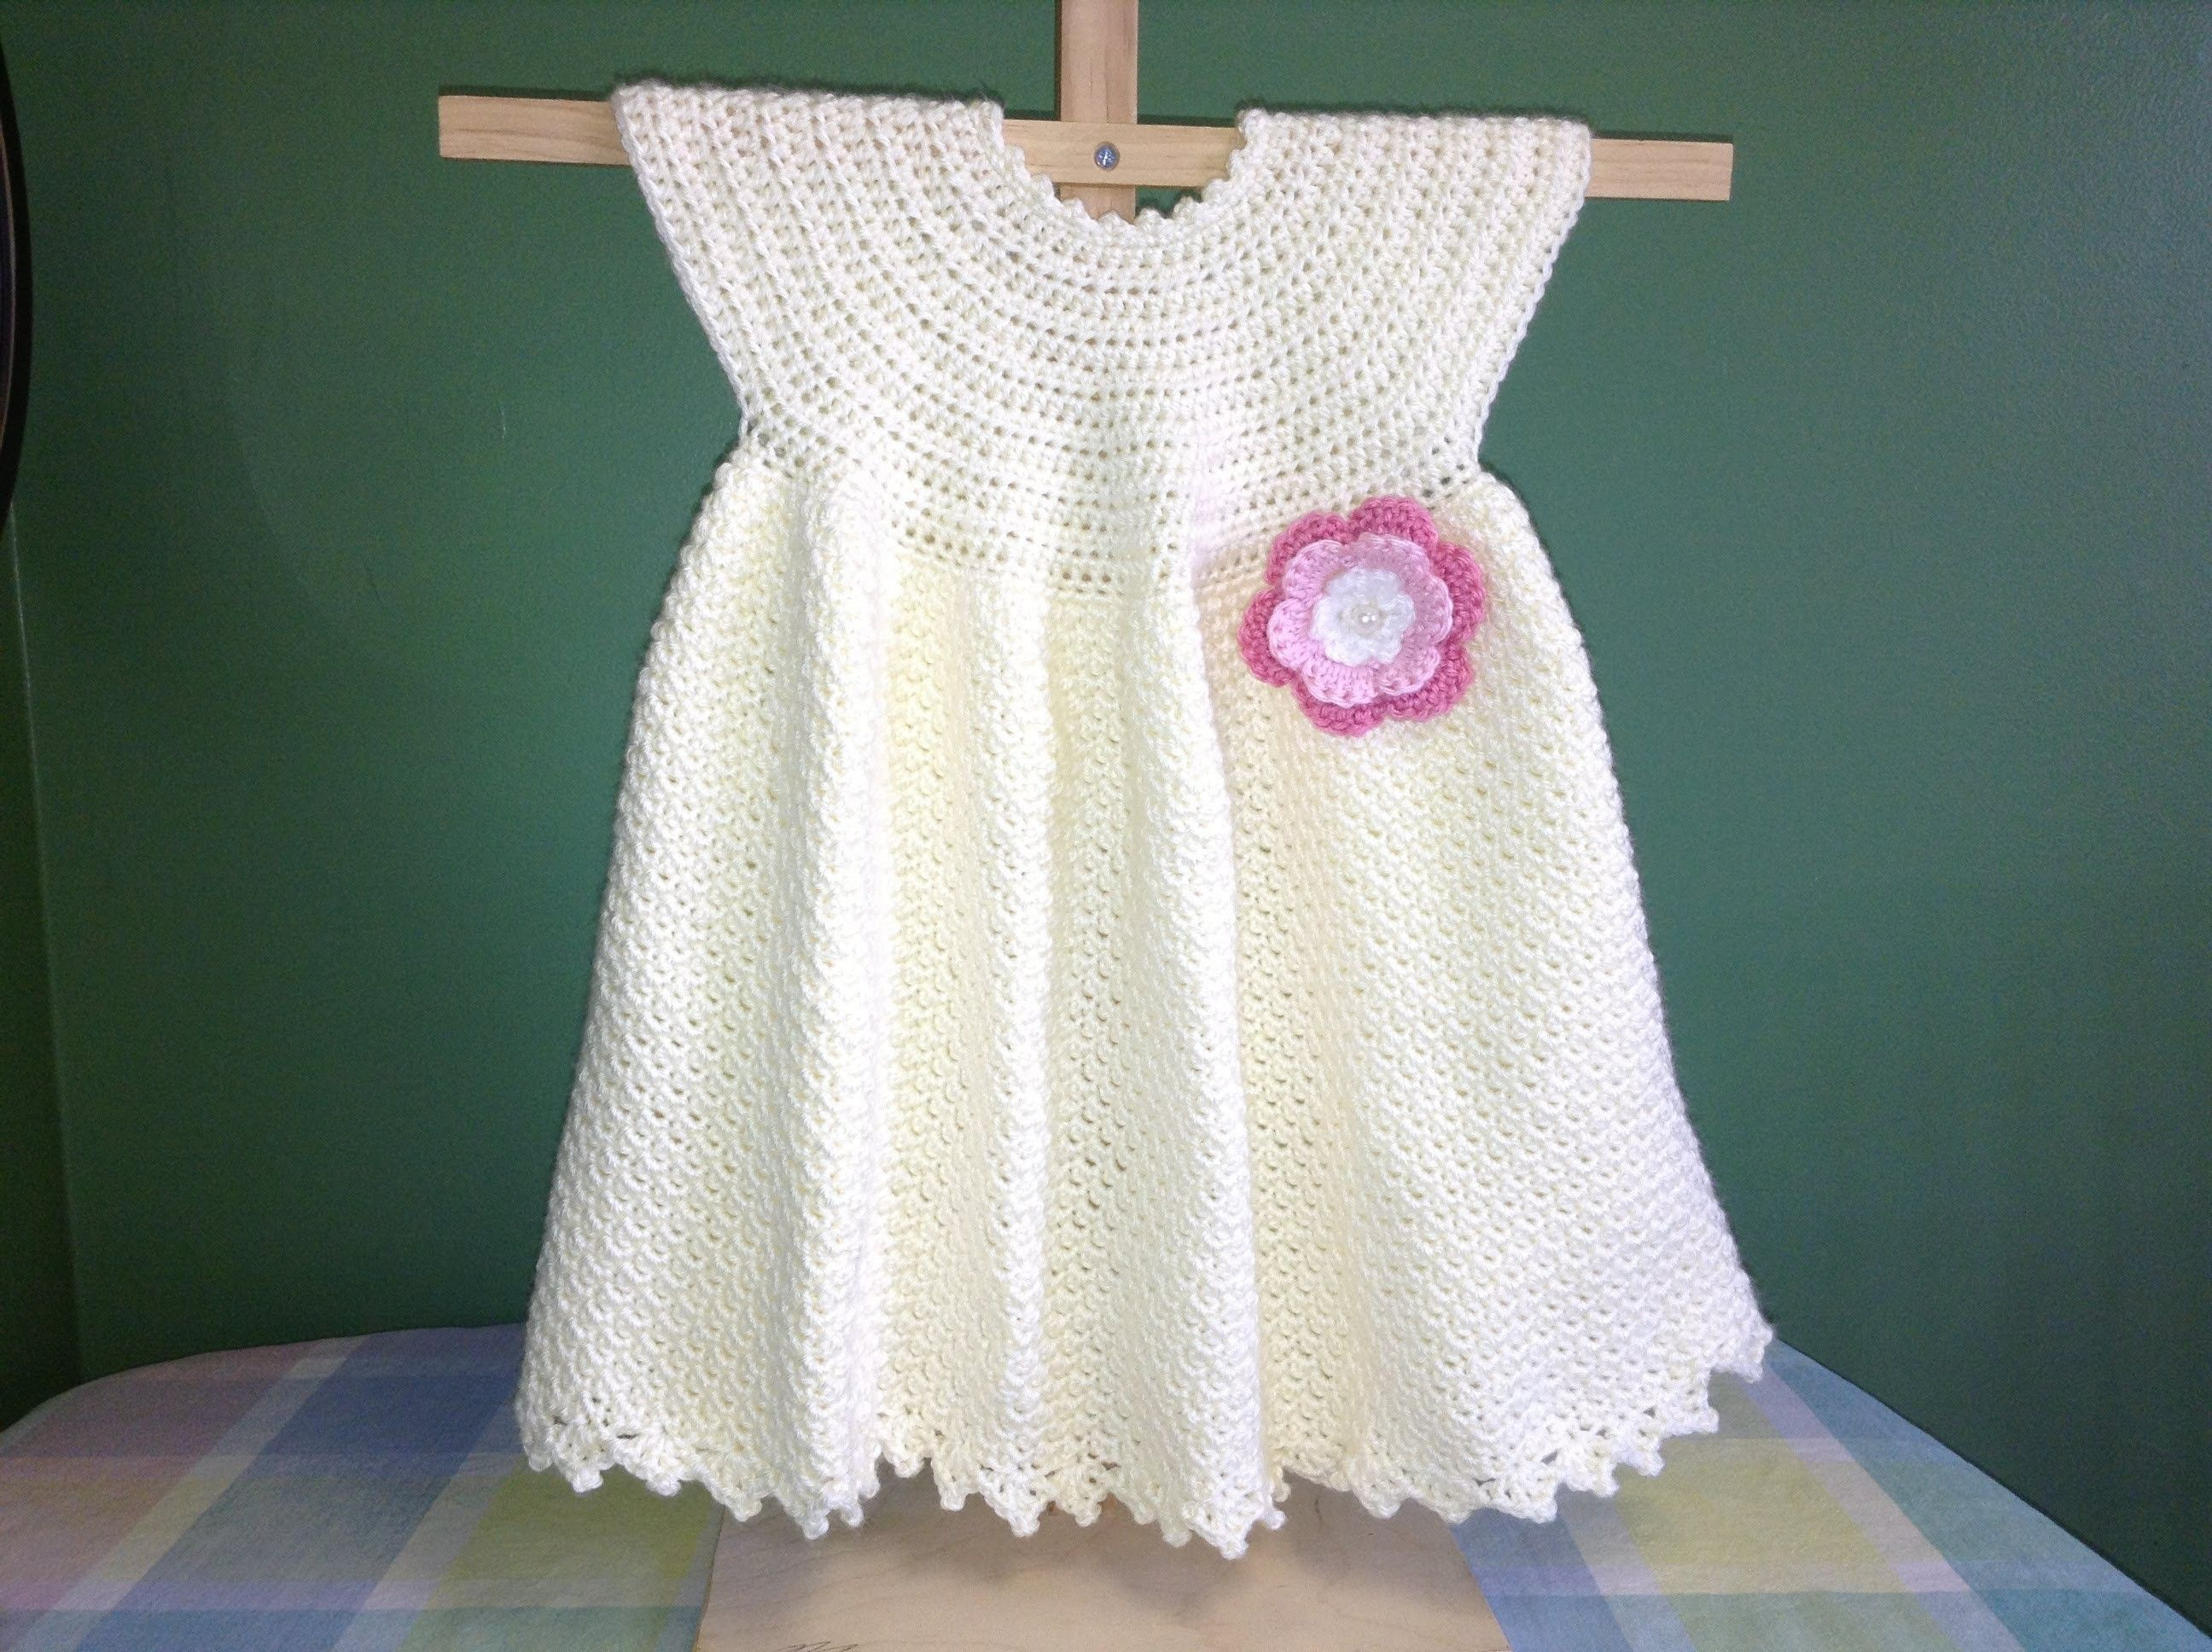 How to Crochet a Baby Dress - Easy | Crochet, Easy and Babies